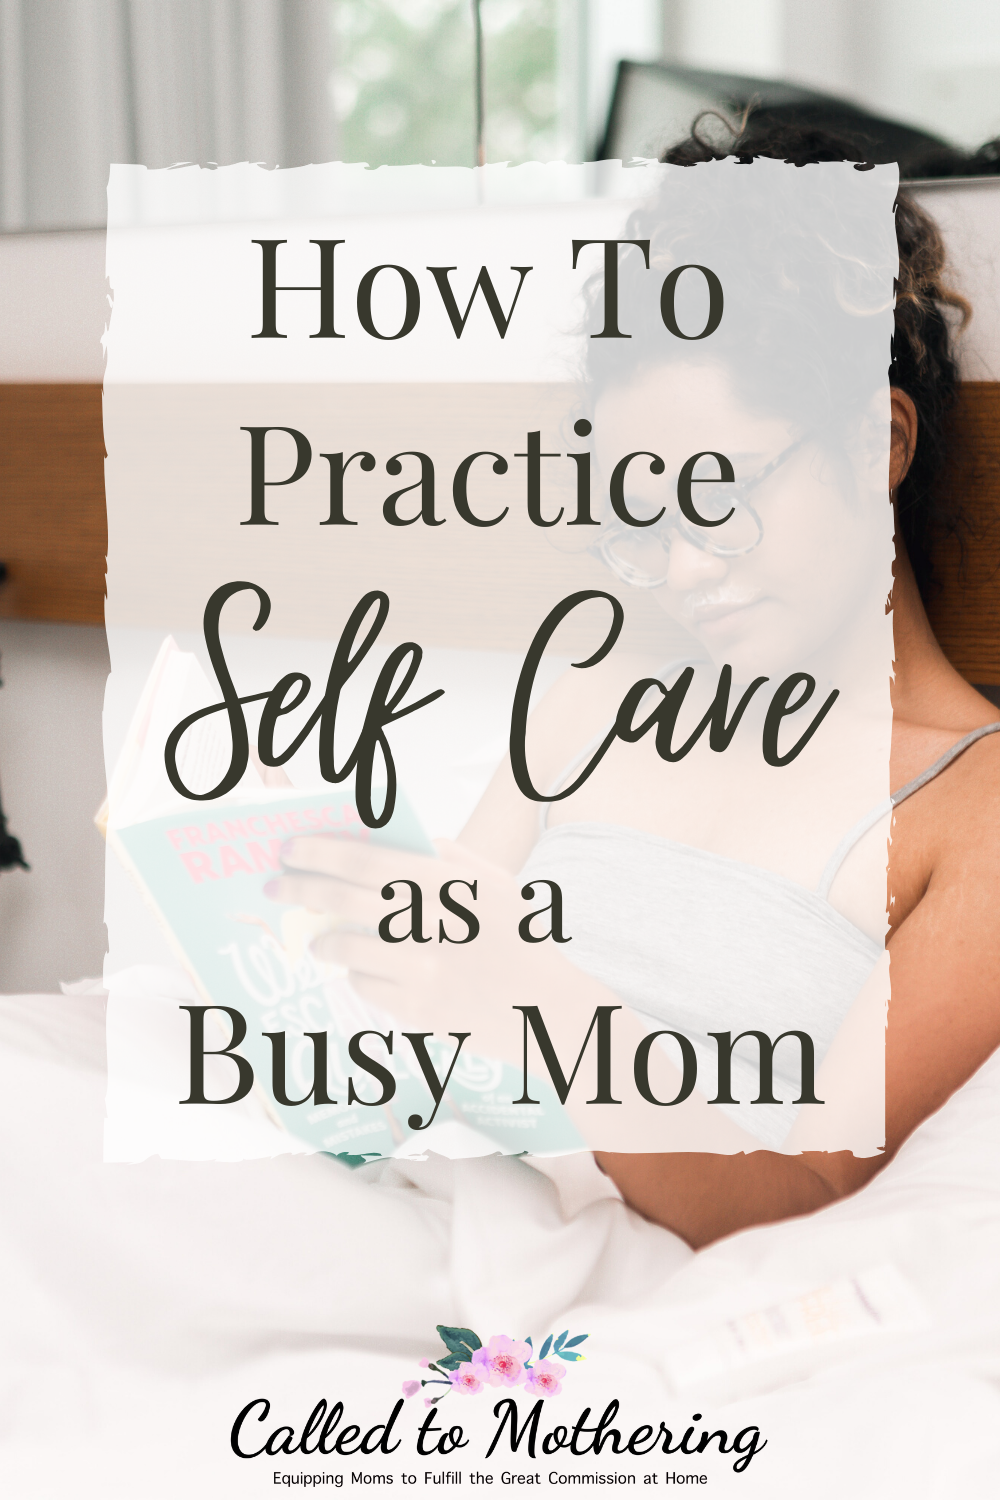 Self care principles for busy Christian moms in the areas of physical, emotional, financial and spiritual health. #selfcareformoms #selfcaretips #selfcarehabits